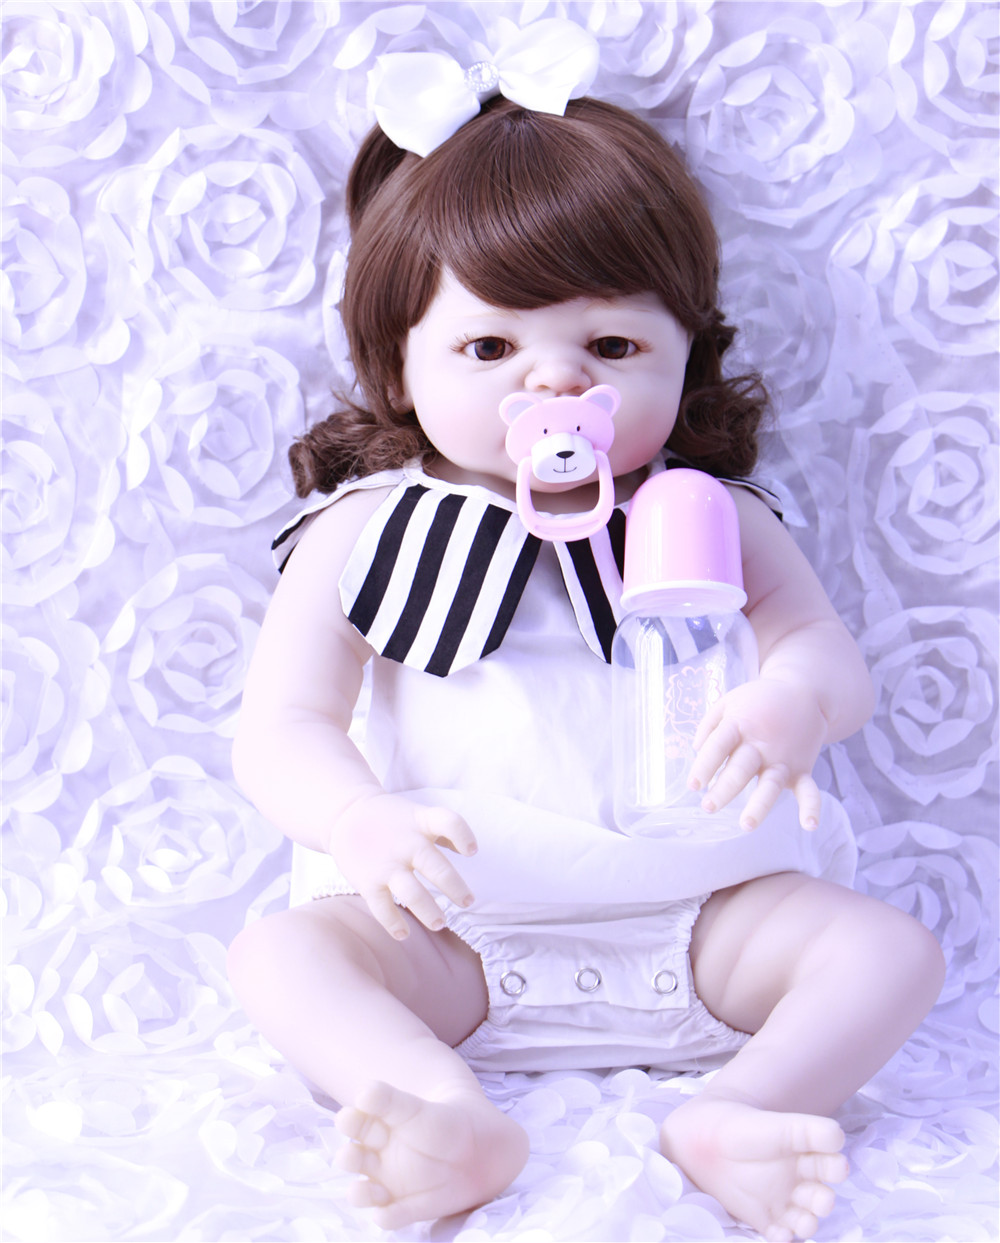 55cm Full Body Silicone Reborn Girl Baby Doll Toys Realistic 22inch Newborn curly Princess Toddler Babies Doll Birthday Gift 55cm Full Body Silicone Reborn Girl Baby Doll Toys Realistic 22inch Newborn curly Princess Toddler Babies Doll Birthday Gift